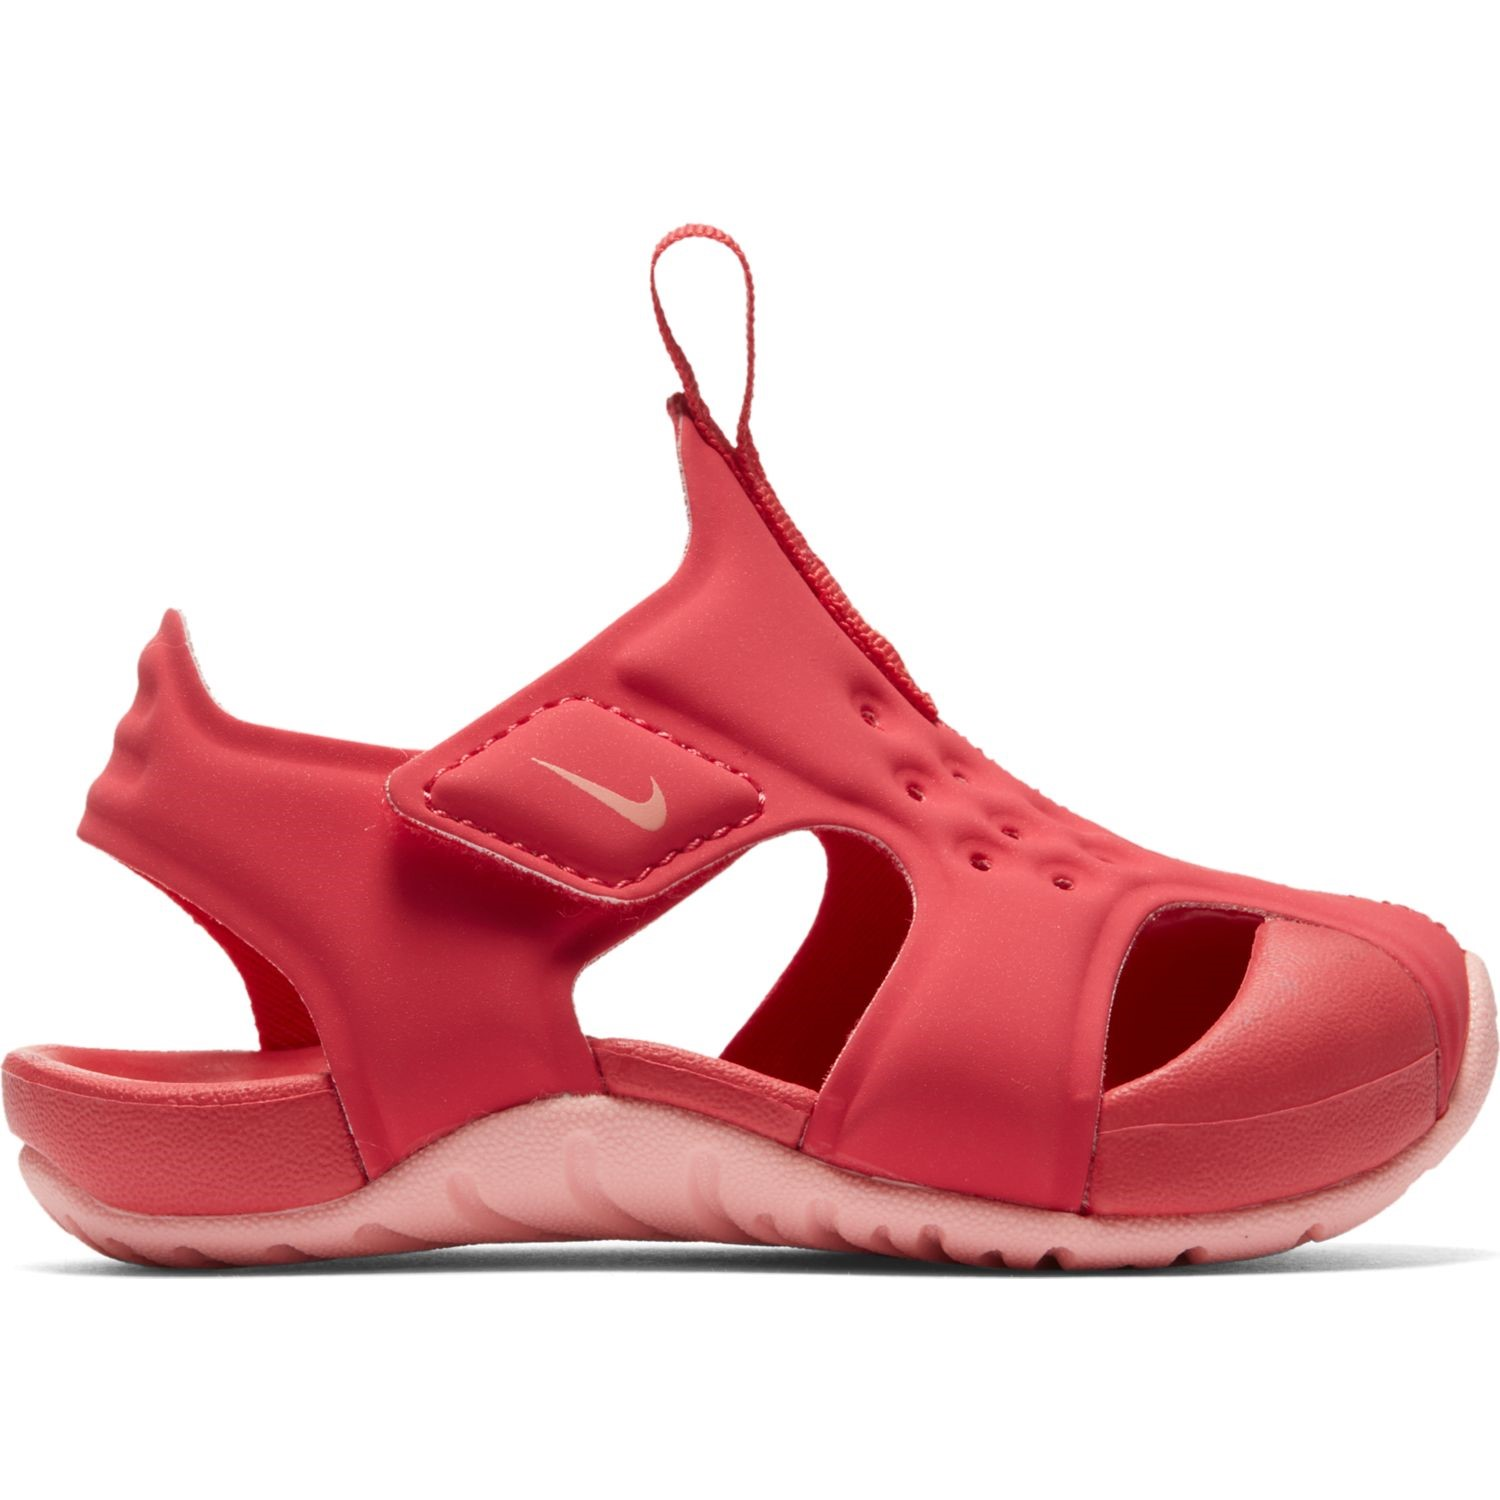 dc05e64281b815 Nike Sunray Protect 2 TD - Toddler Girls Sandals - Tropical Pink Bleached  Coral